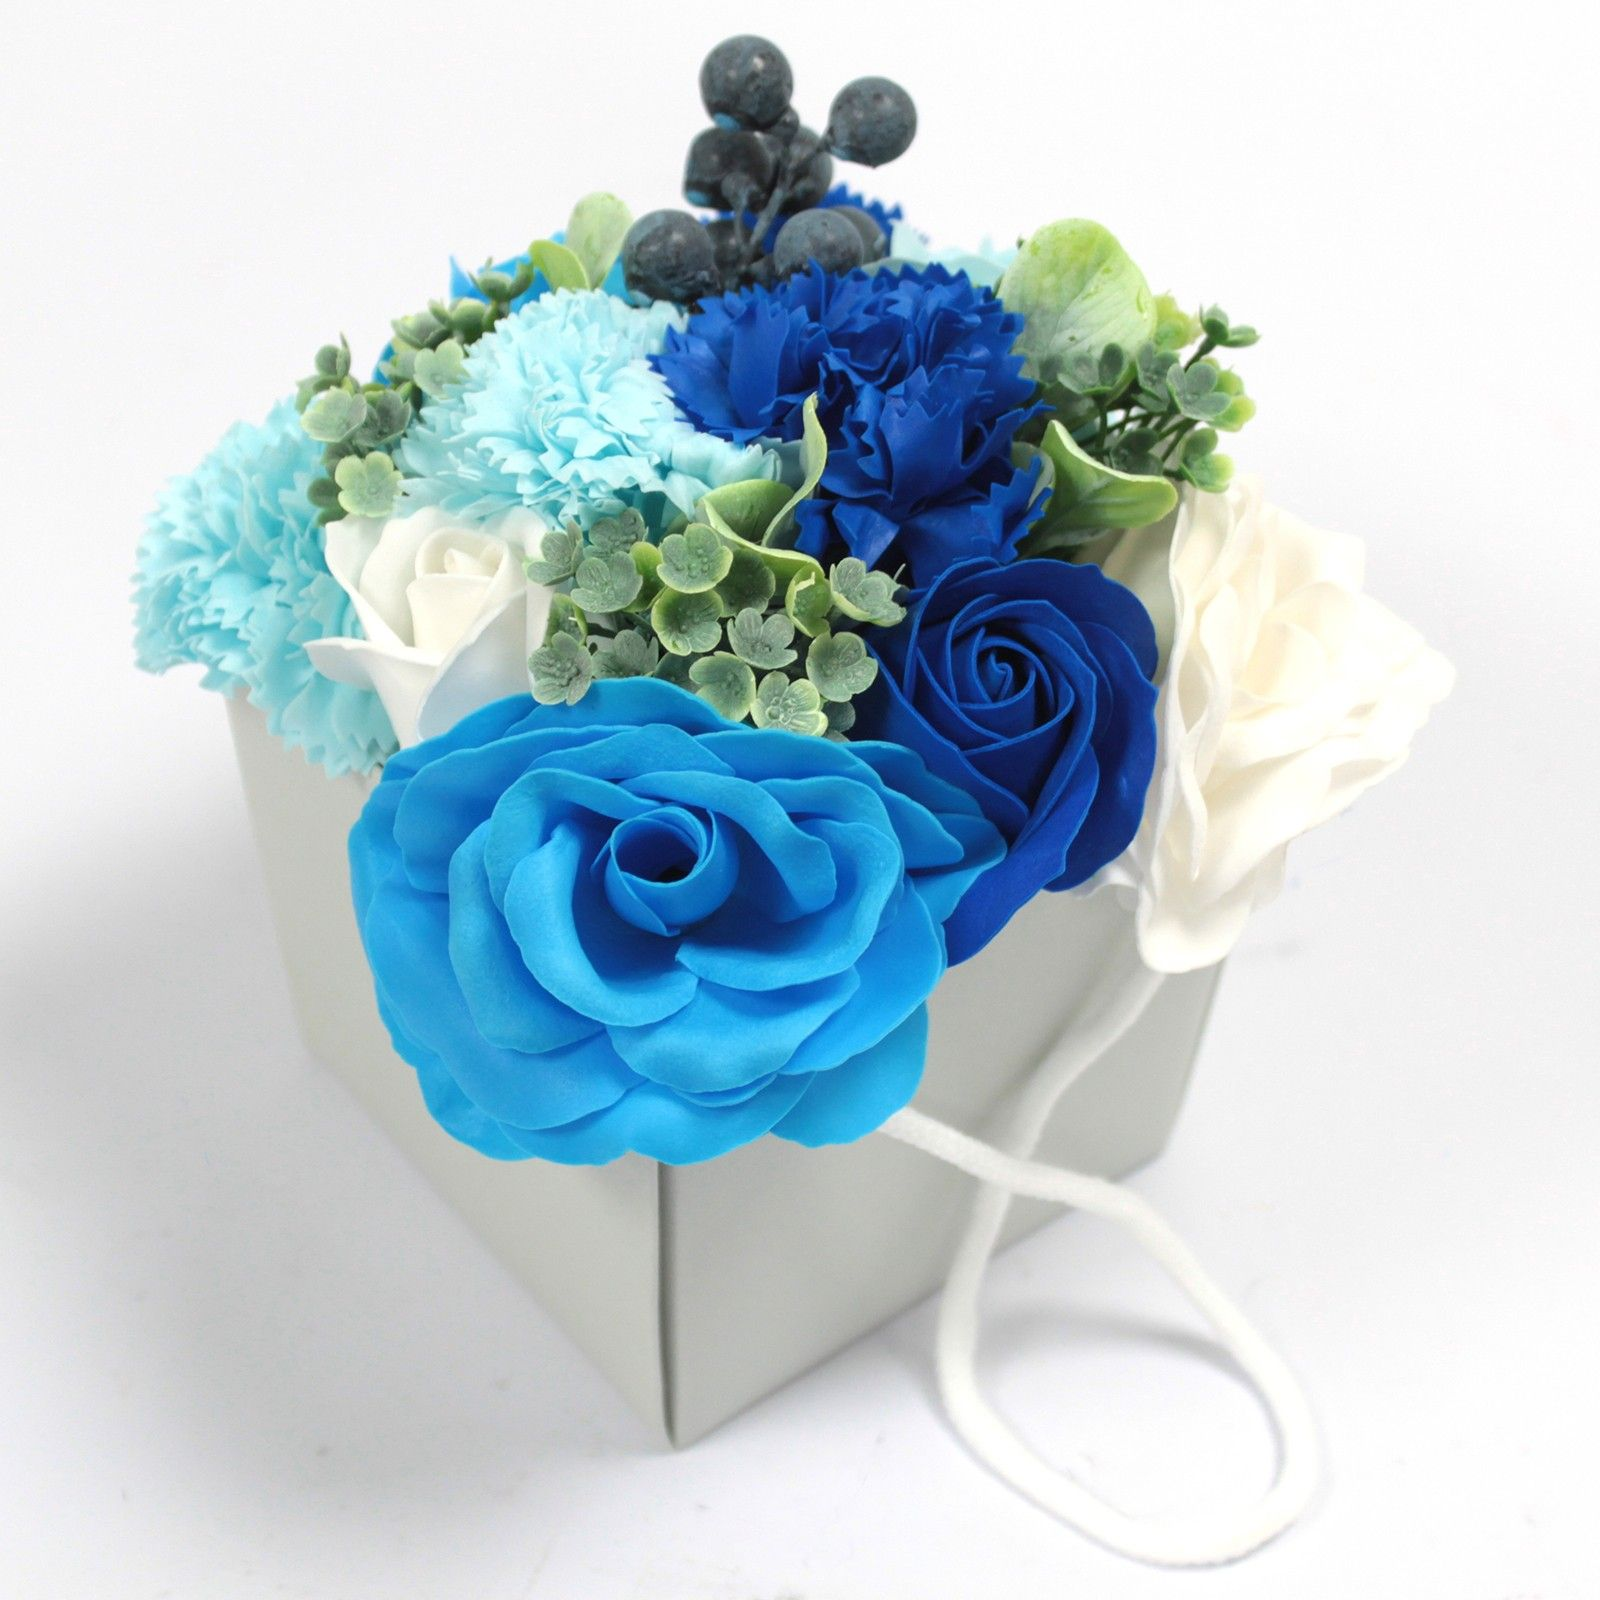 Blue Rose And Carnation Soap Flower Bouquet